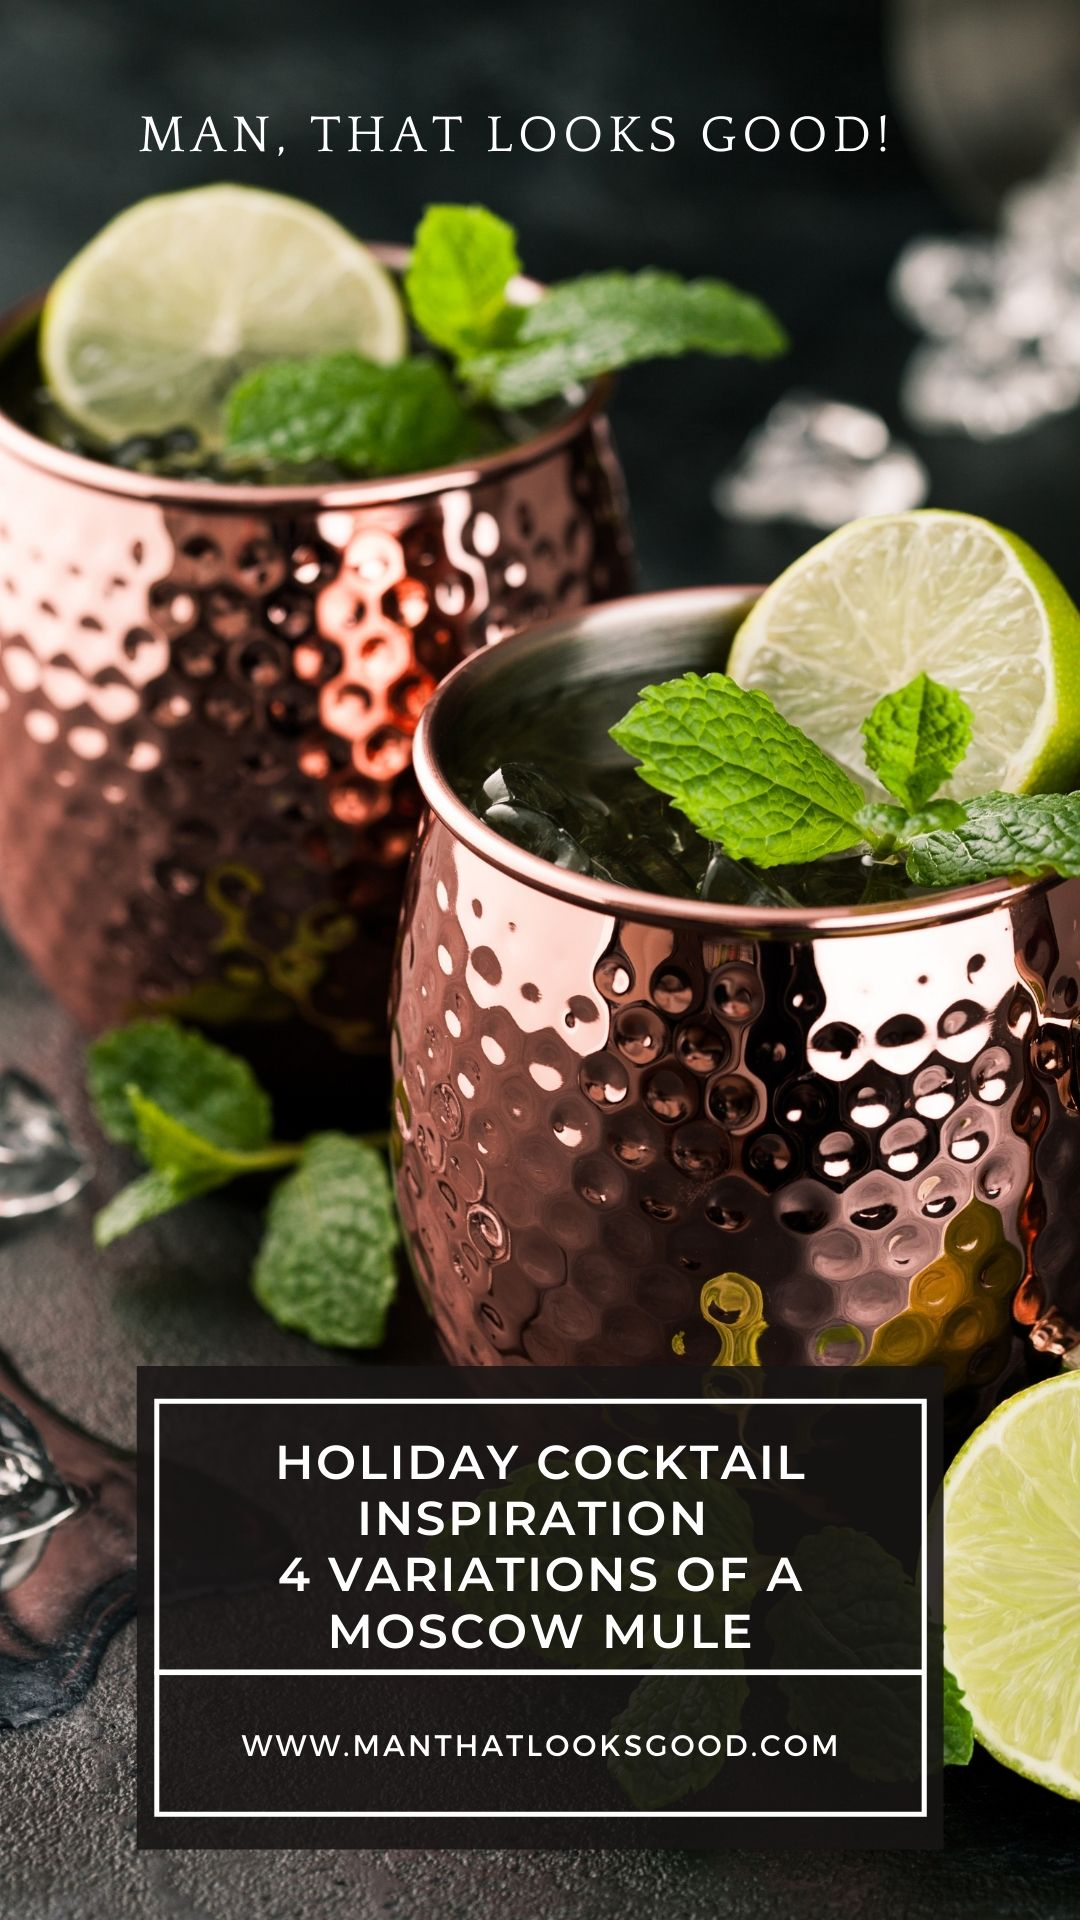 4 Variations of A Moscow Mule Cocktail - Man, That Looks Good!